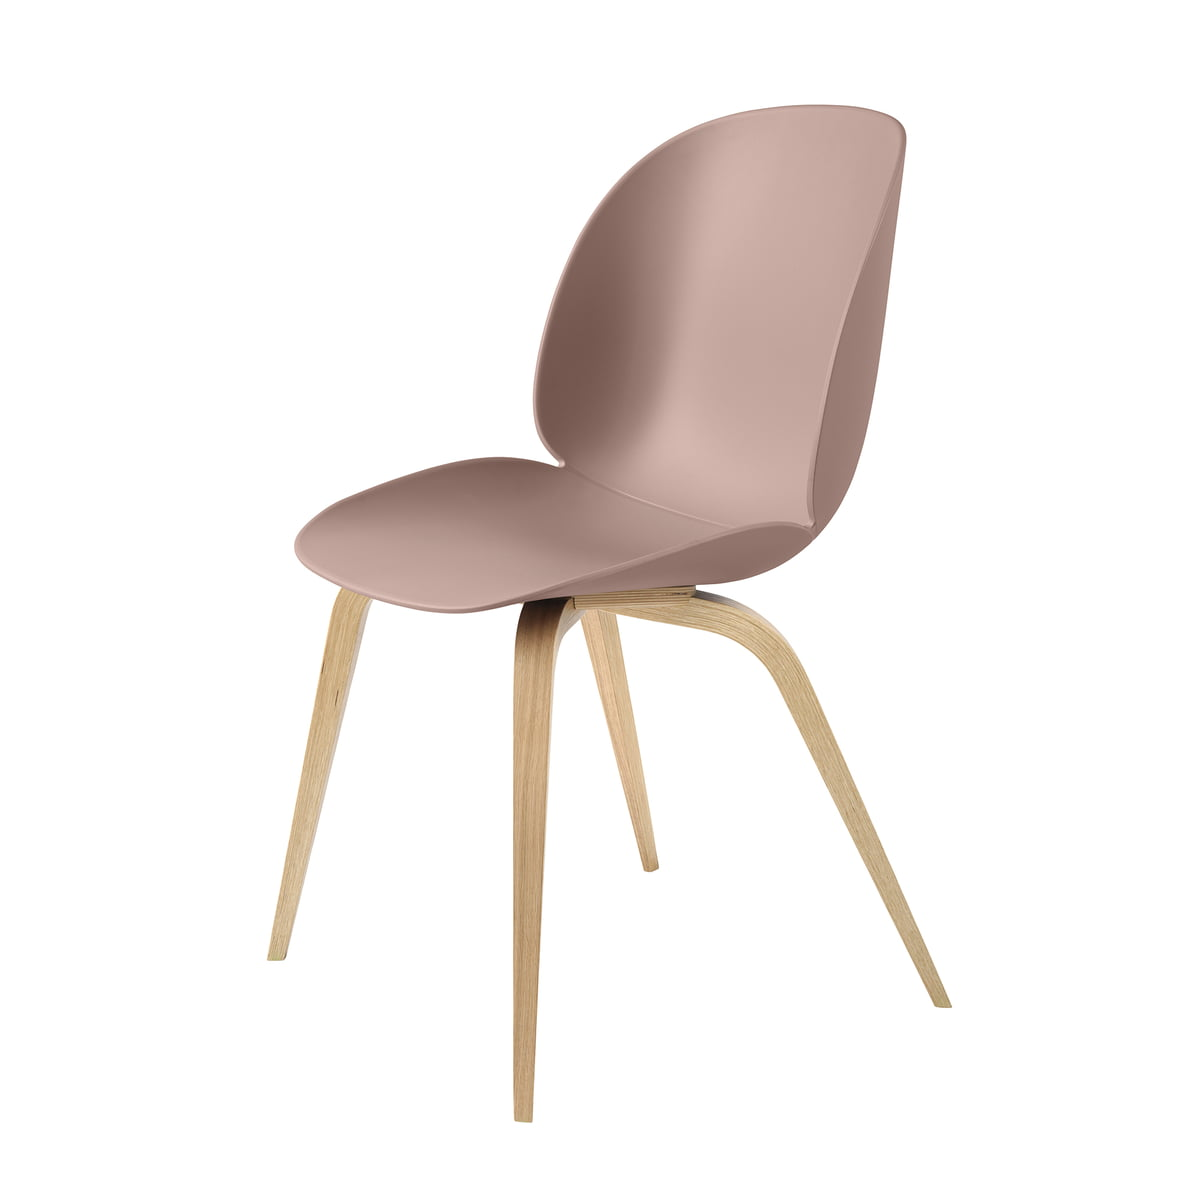 Beetle Dining Chair by Gubi : Gubi Beetle Dining Chair Wood Base Eiche sweetpink Freisteller from www.connox.co.uk size 1200 x 1200 jpeg 35kB